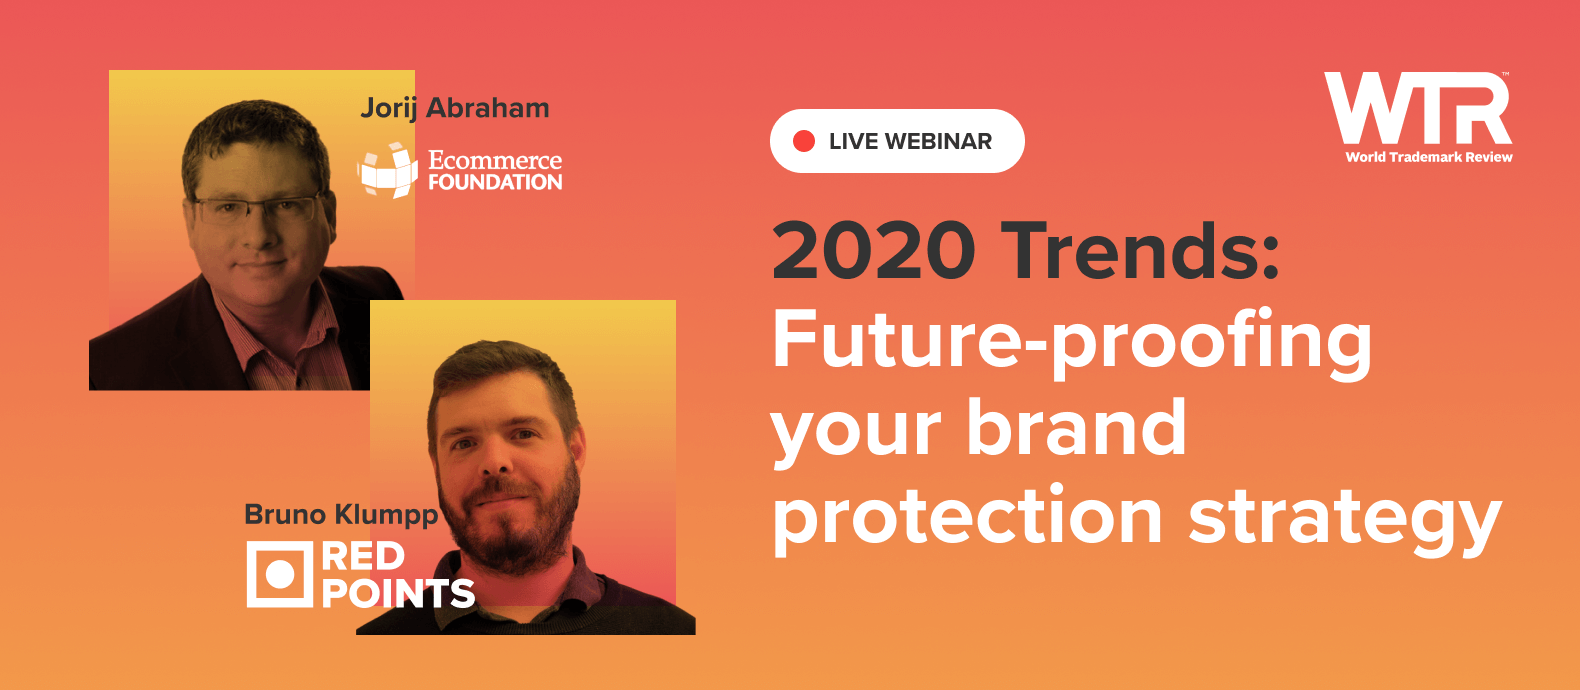 2020 trends: Future-proofing your brand protection strategy - Part 1